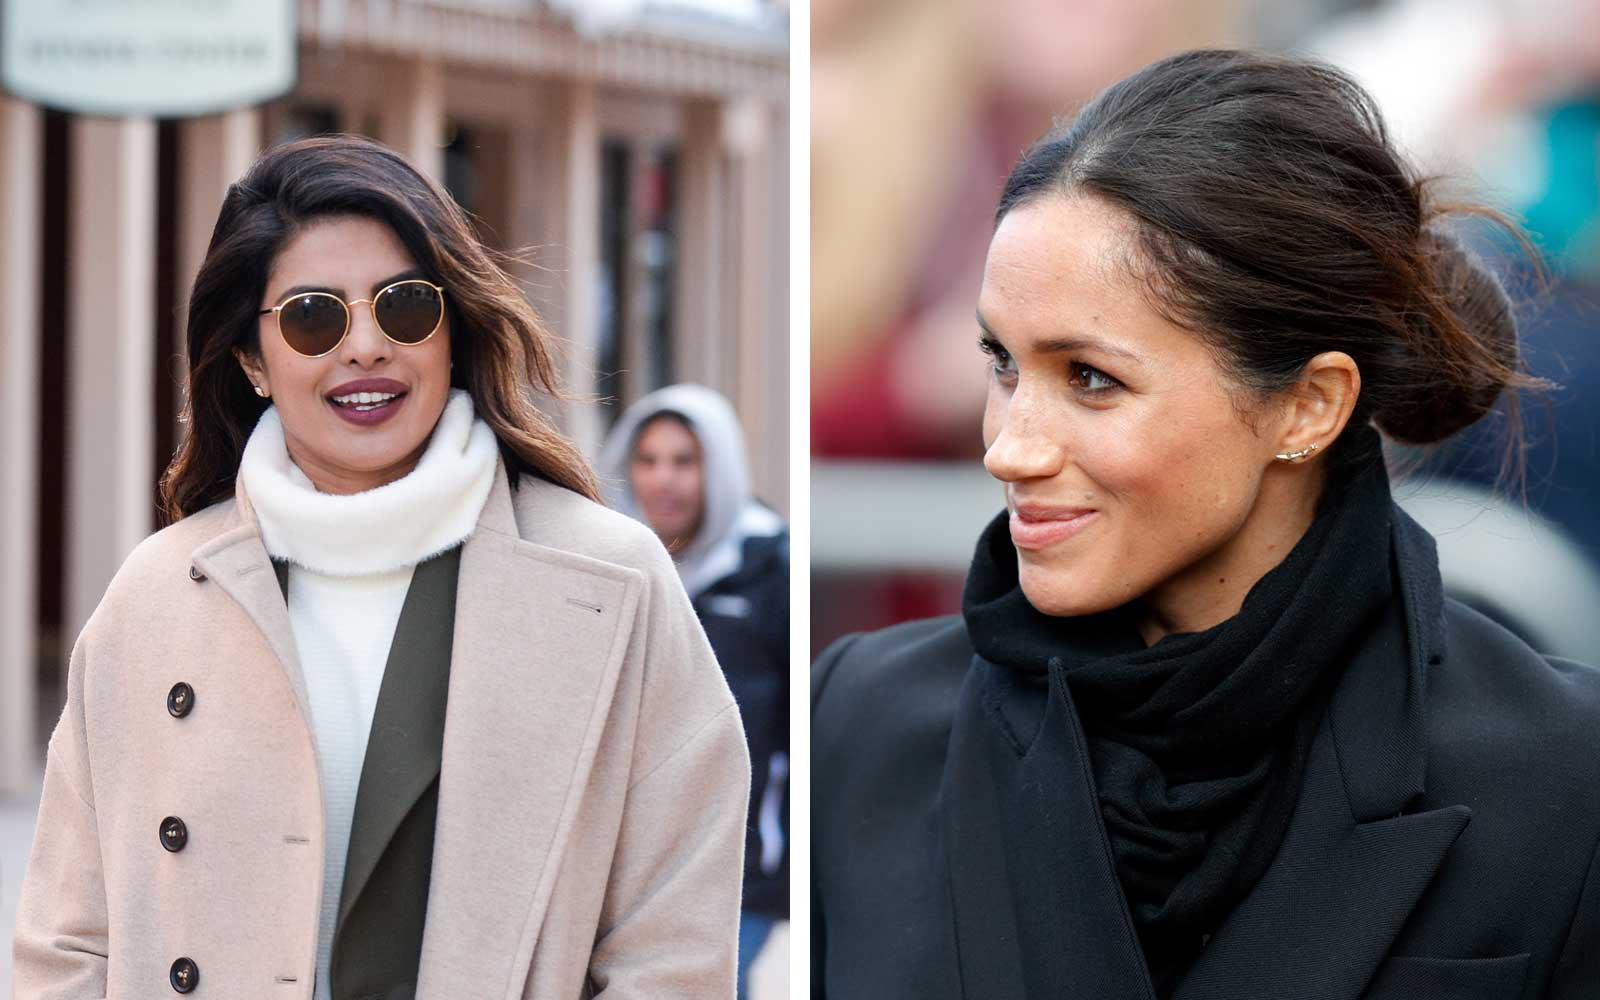 Priyanka Chopra and Meghan Markle